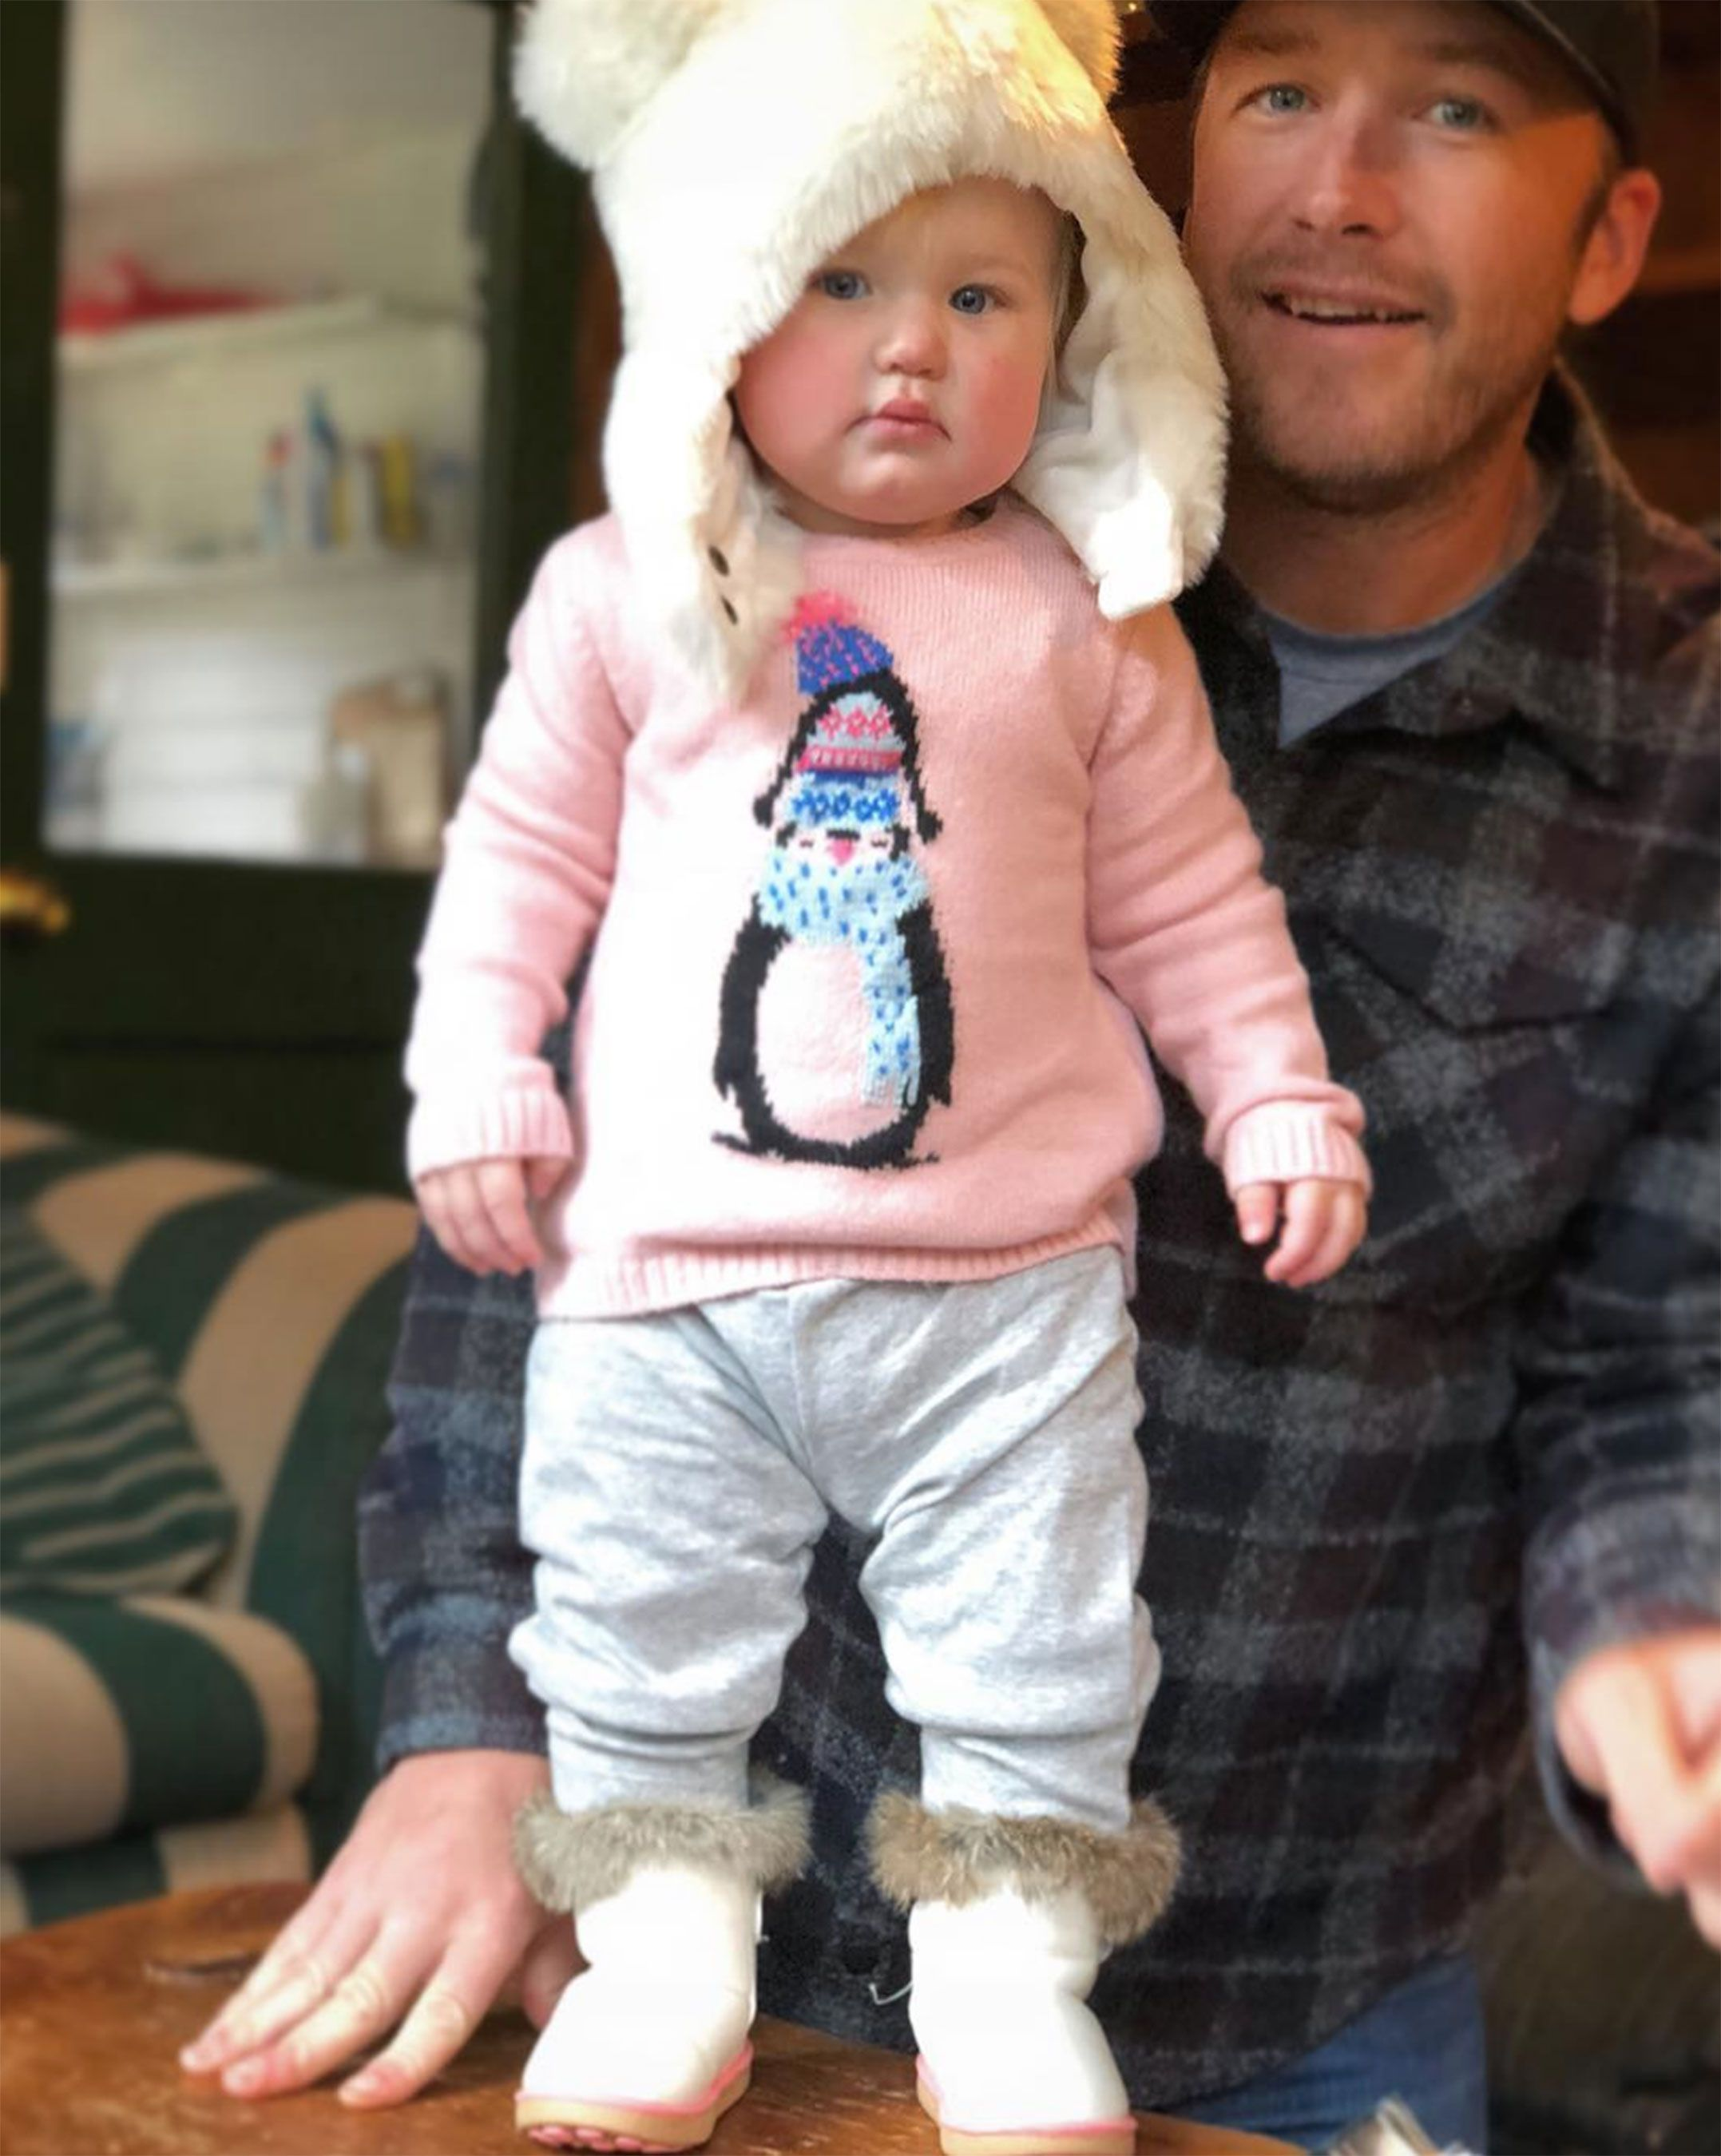 Bode Miller's Daughter 'Missing for Just a Short Amount of Time' Before Being Found in Pool